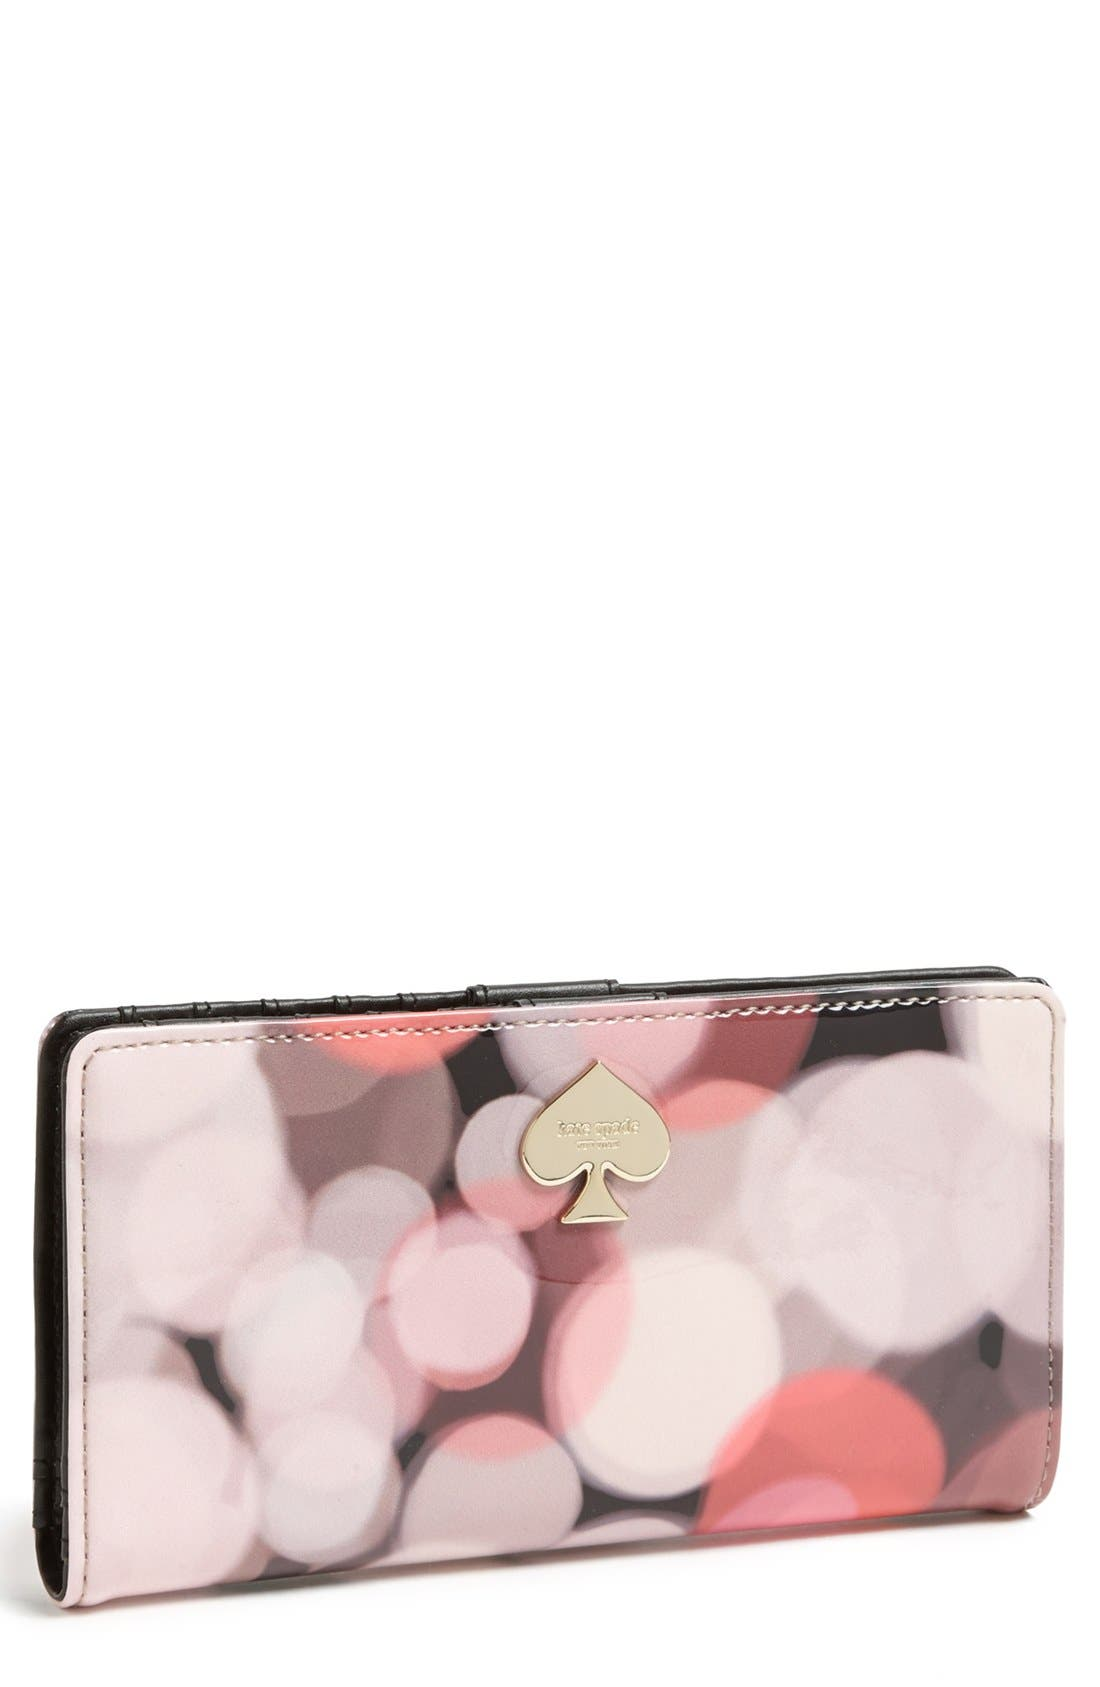 Alternate Image 1 Selected - kate spade new york 'stacy' continental wallet